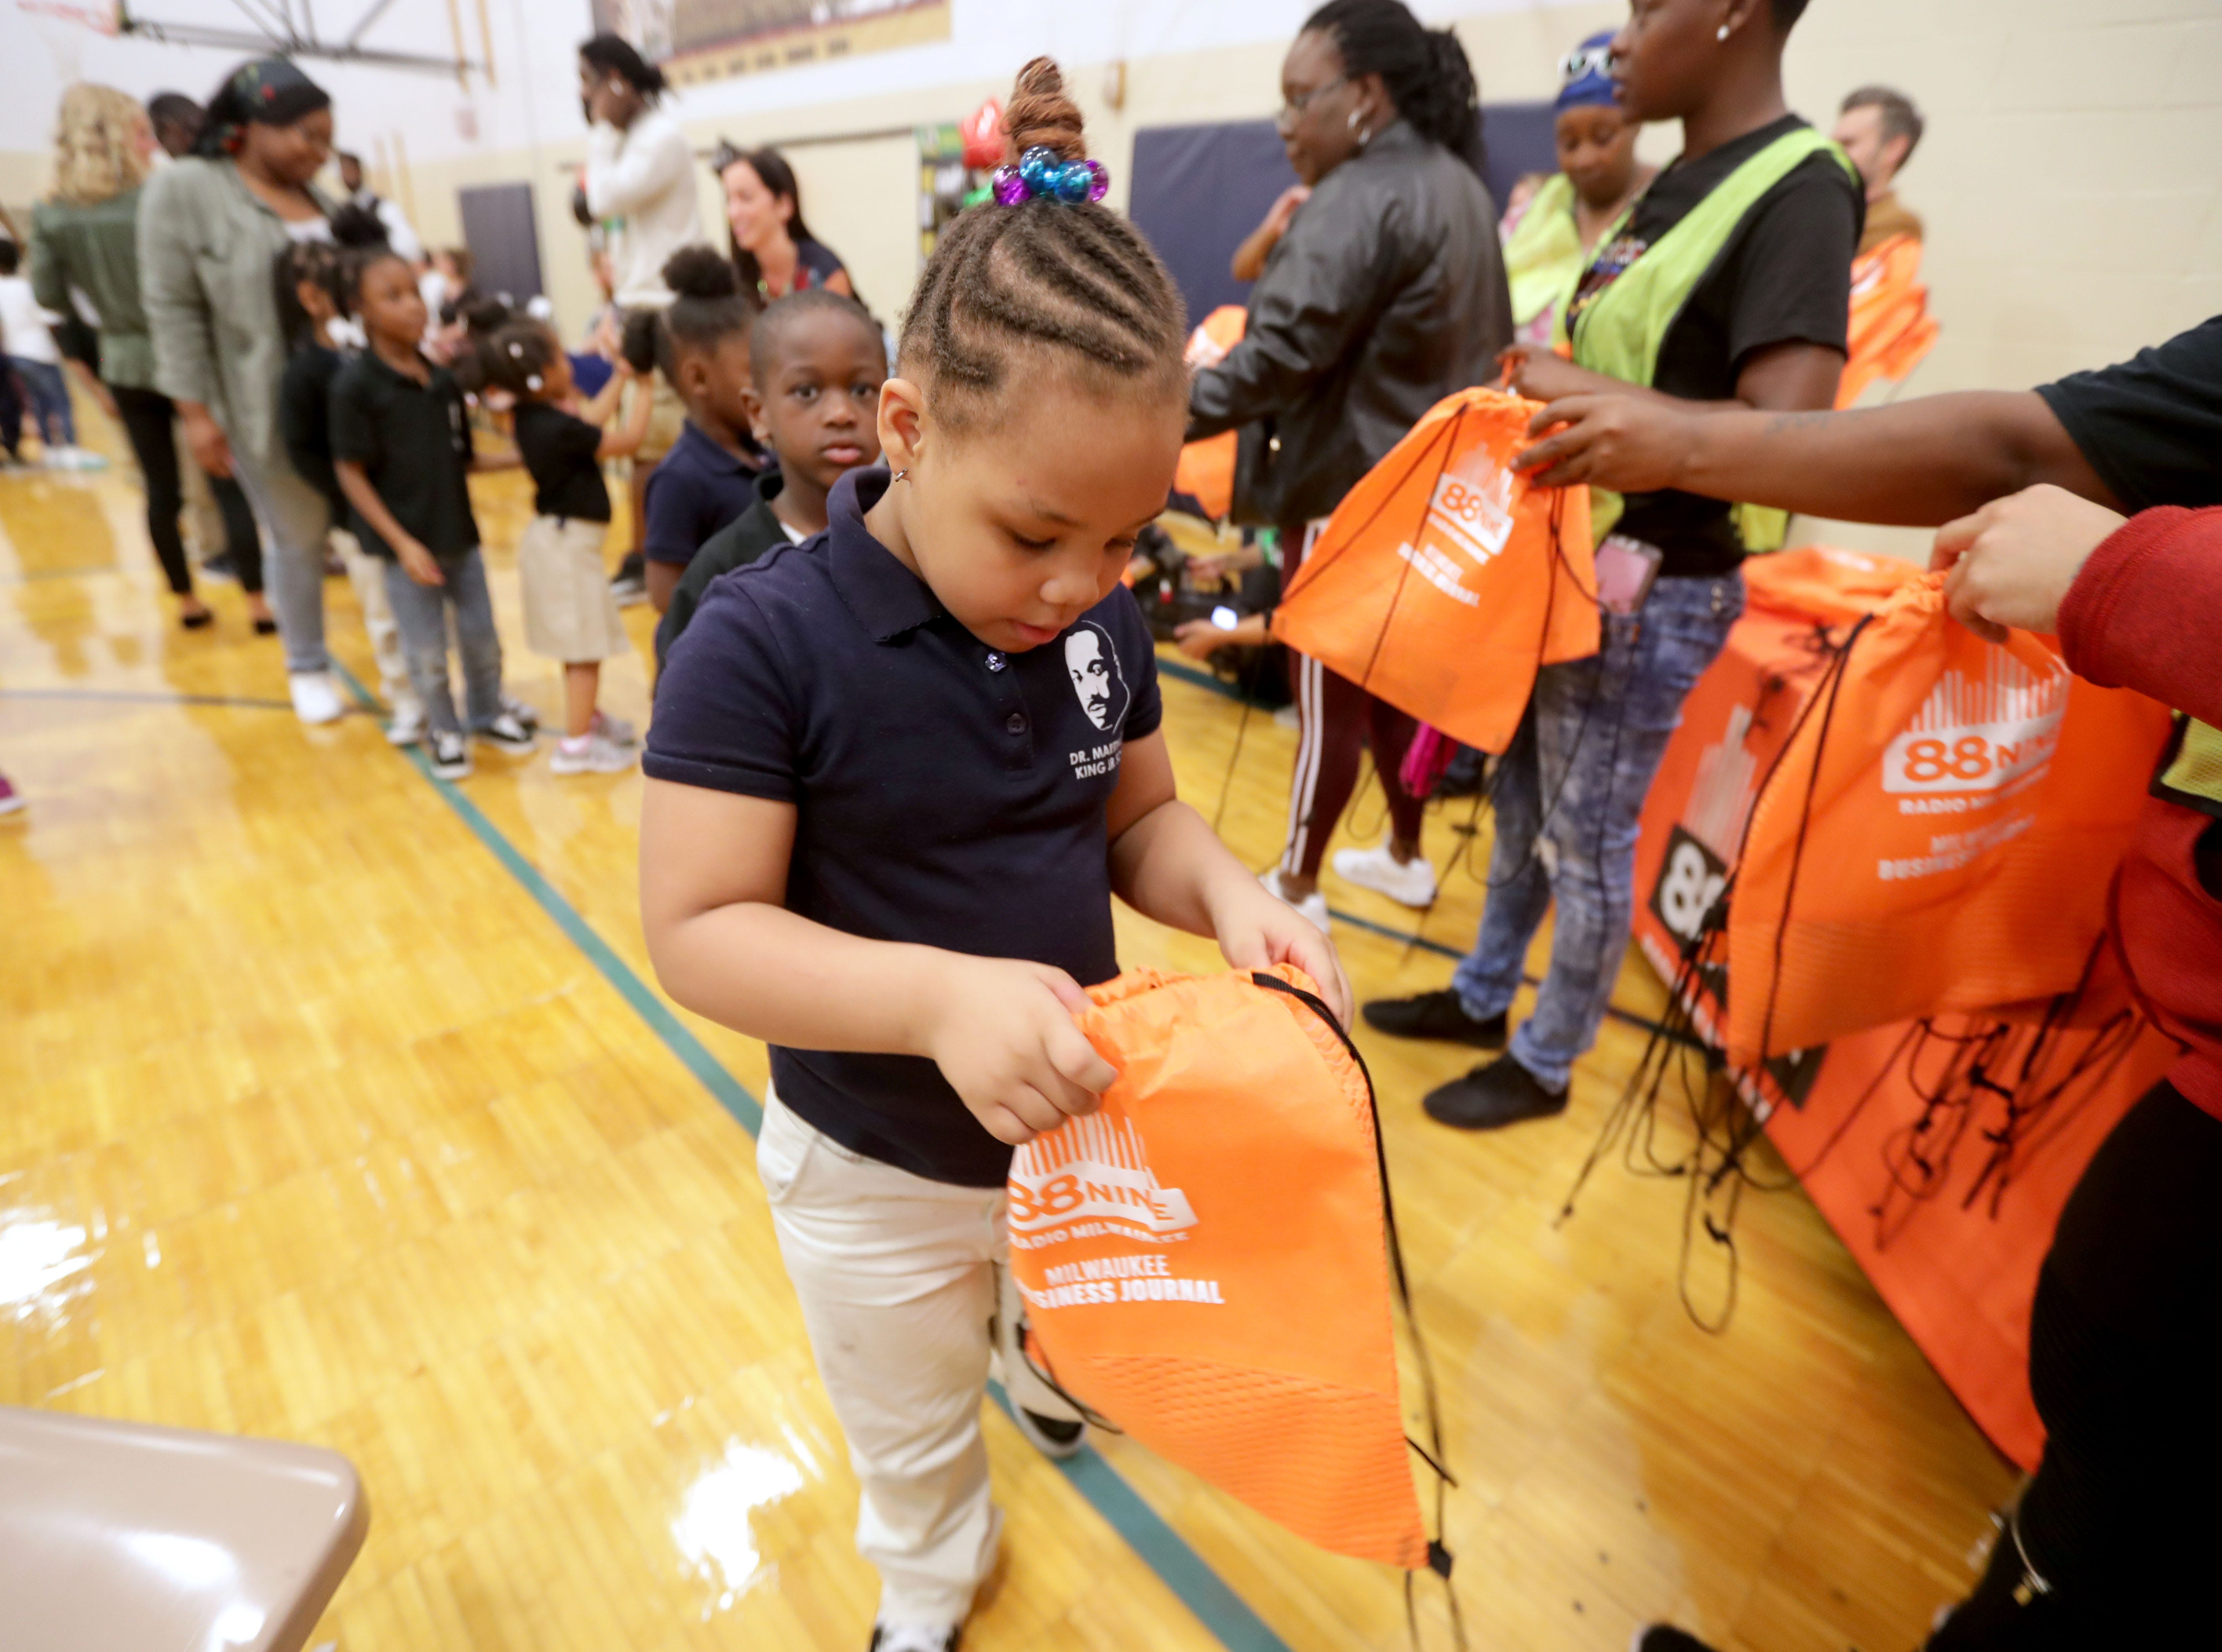 Anihya Mooney-Good, a Dr. Martin Luther King Jr. student, looks in her backpack after receiving it Wednesday at the school.